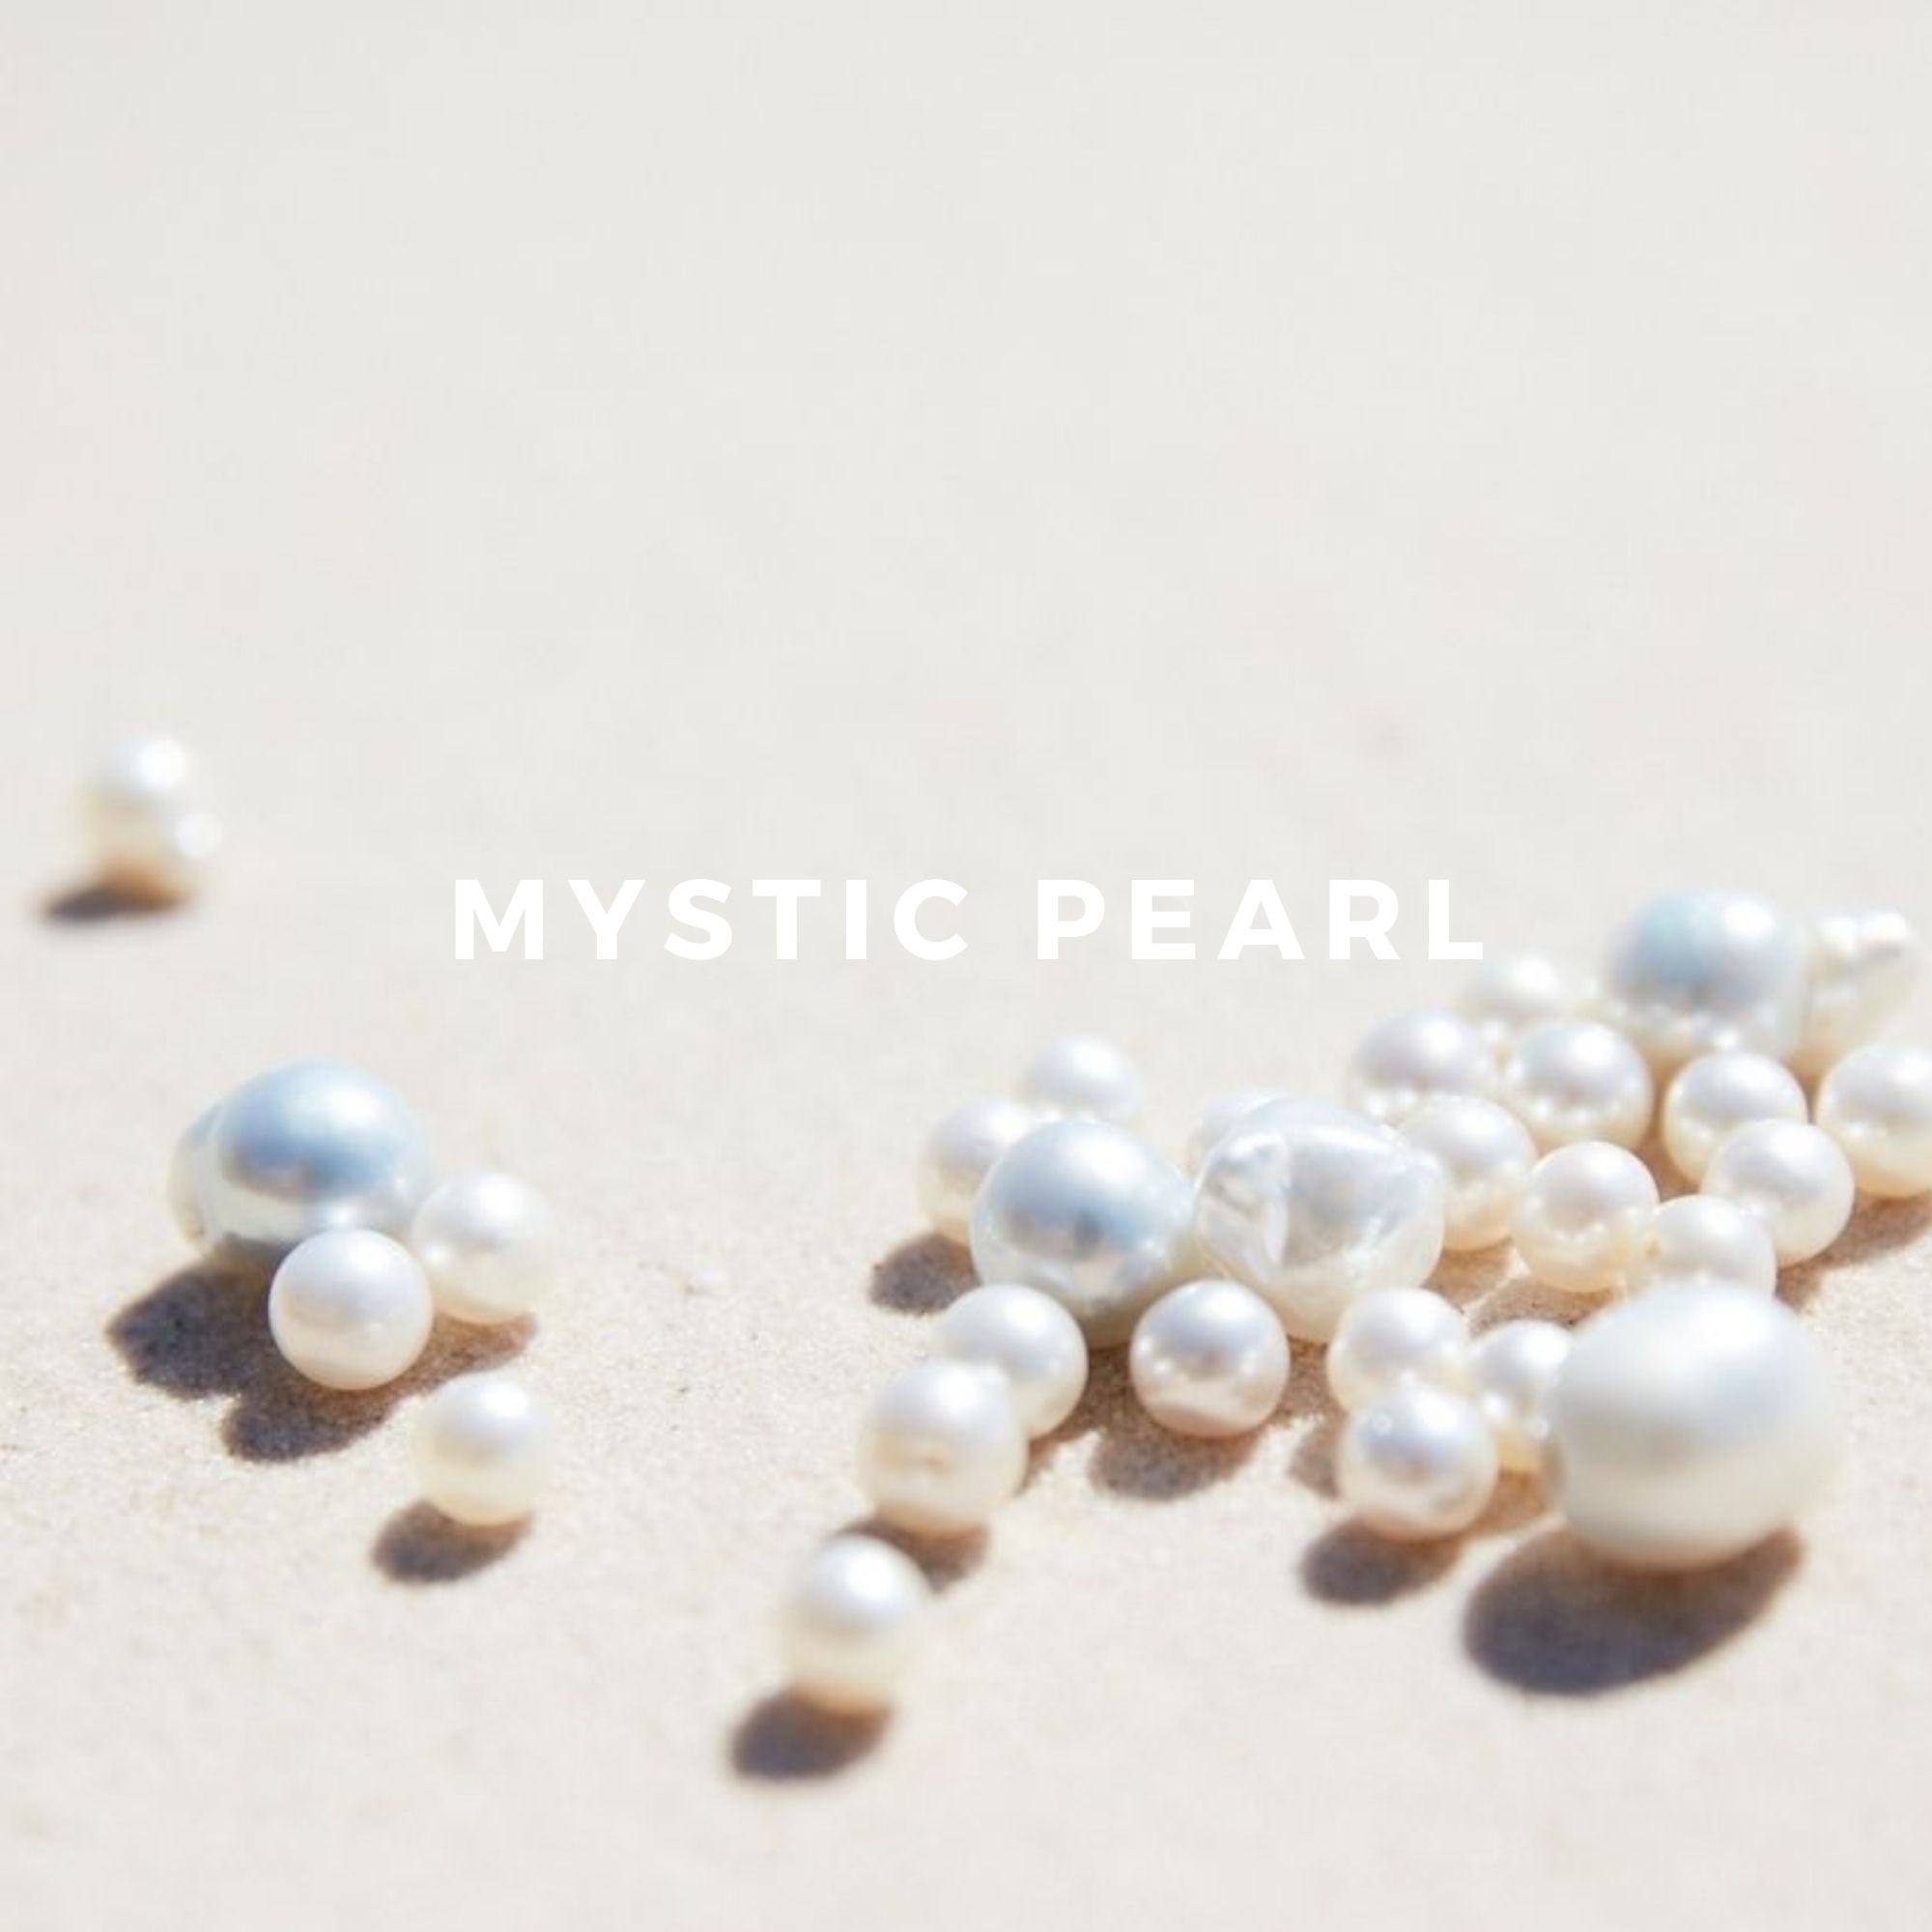 Mystic Pearl is particularly unique because we created it using the scent from real South Sea pearls, giving Mystic Pearl its opening burst of ocean freshness, drying down to notes of tropical white flowers, ylang ylang and frangipani, a touch of coconut, and a hint of warmth from tropical spices, cinnamon and nutmeg.